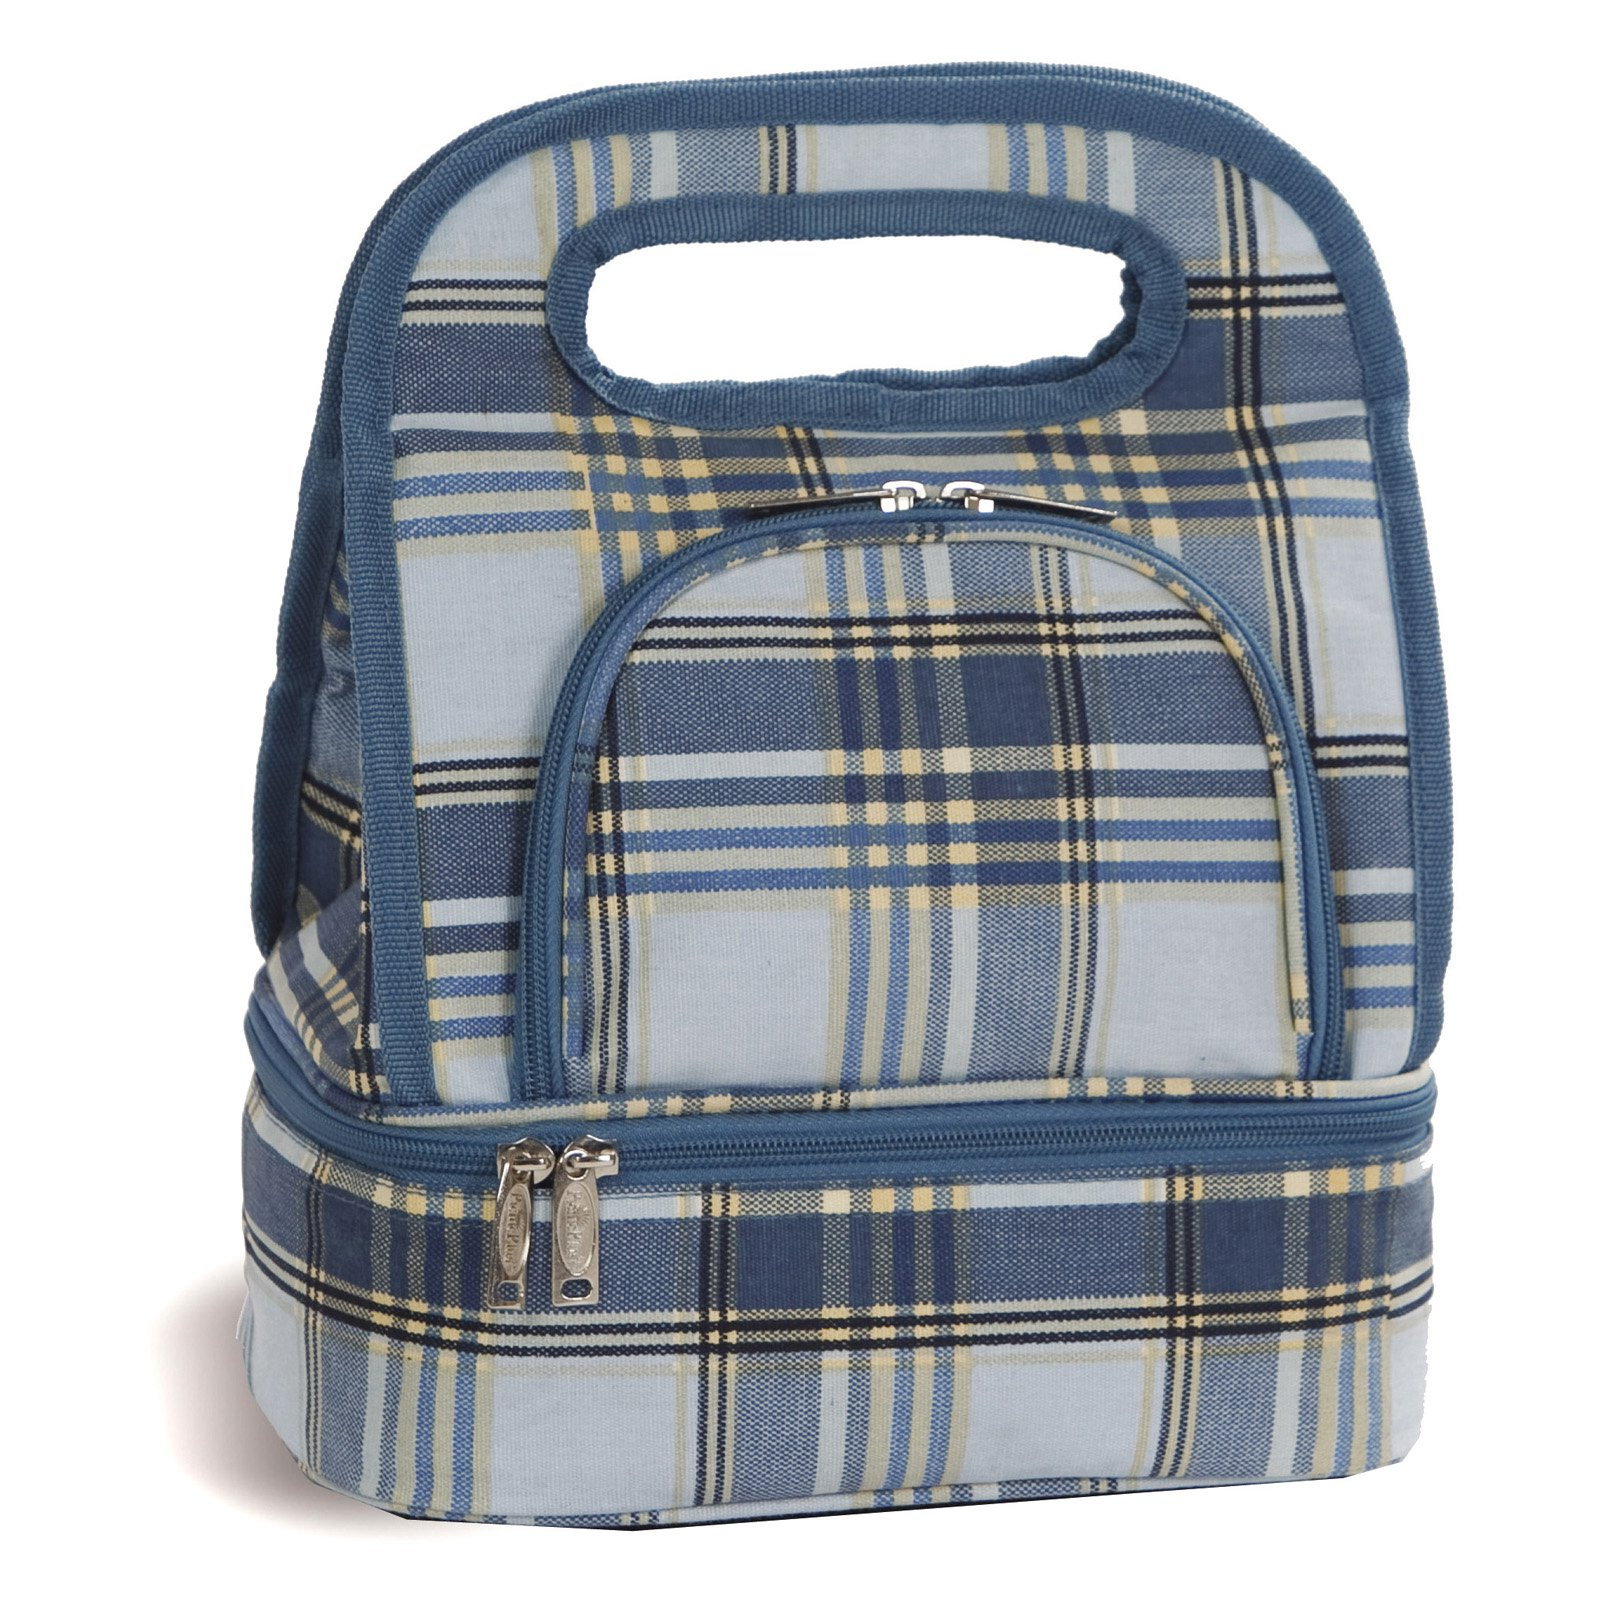 Picnic Plus Savoy Lunch Bag - Provence Flair